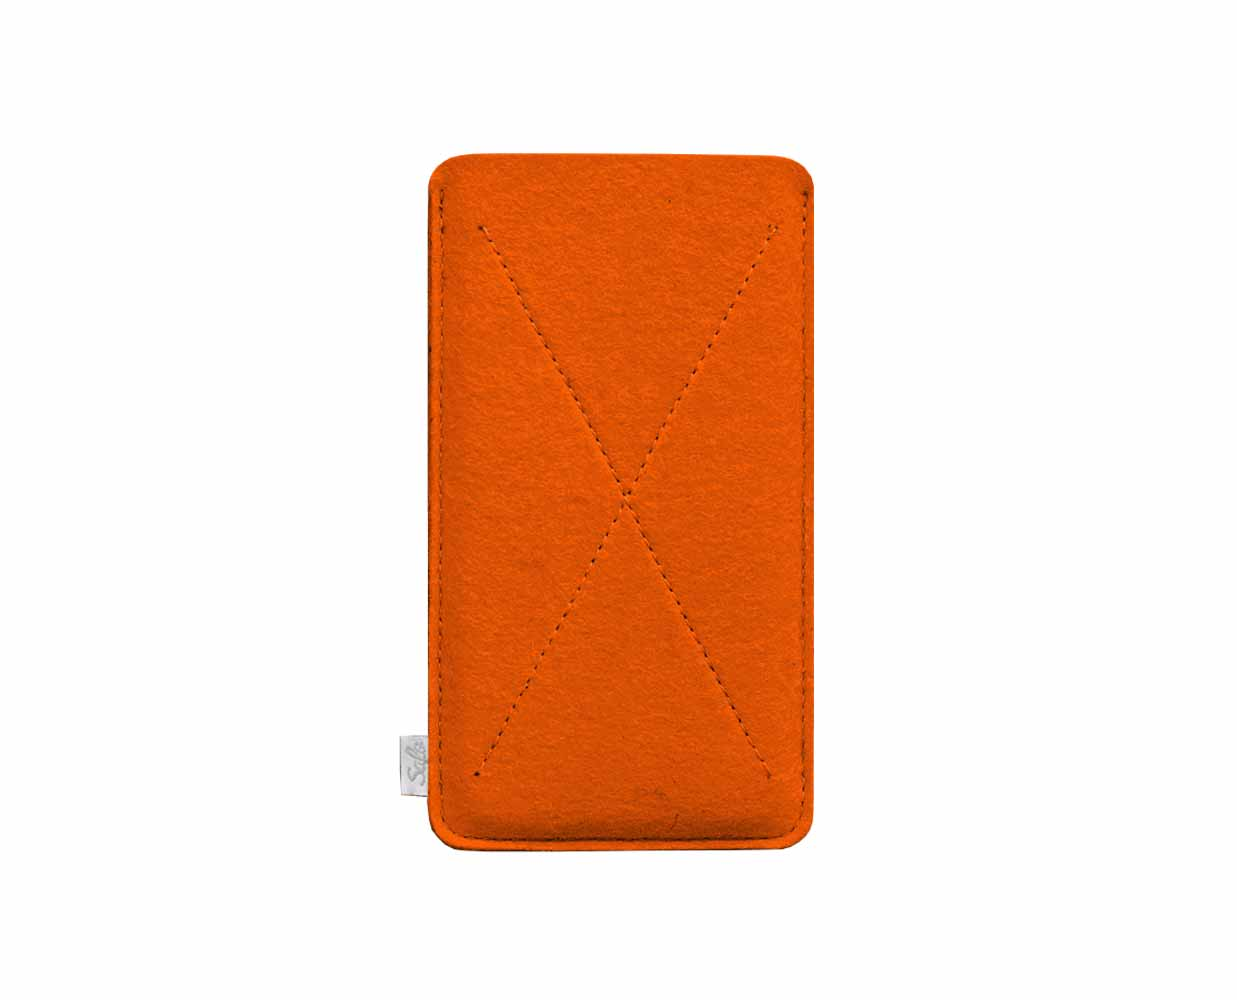 Чехлы: CROSS Orange iPhone 6 Plus, фотография №1